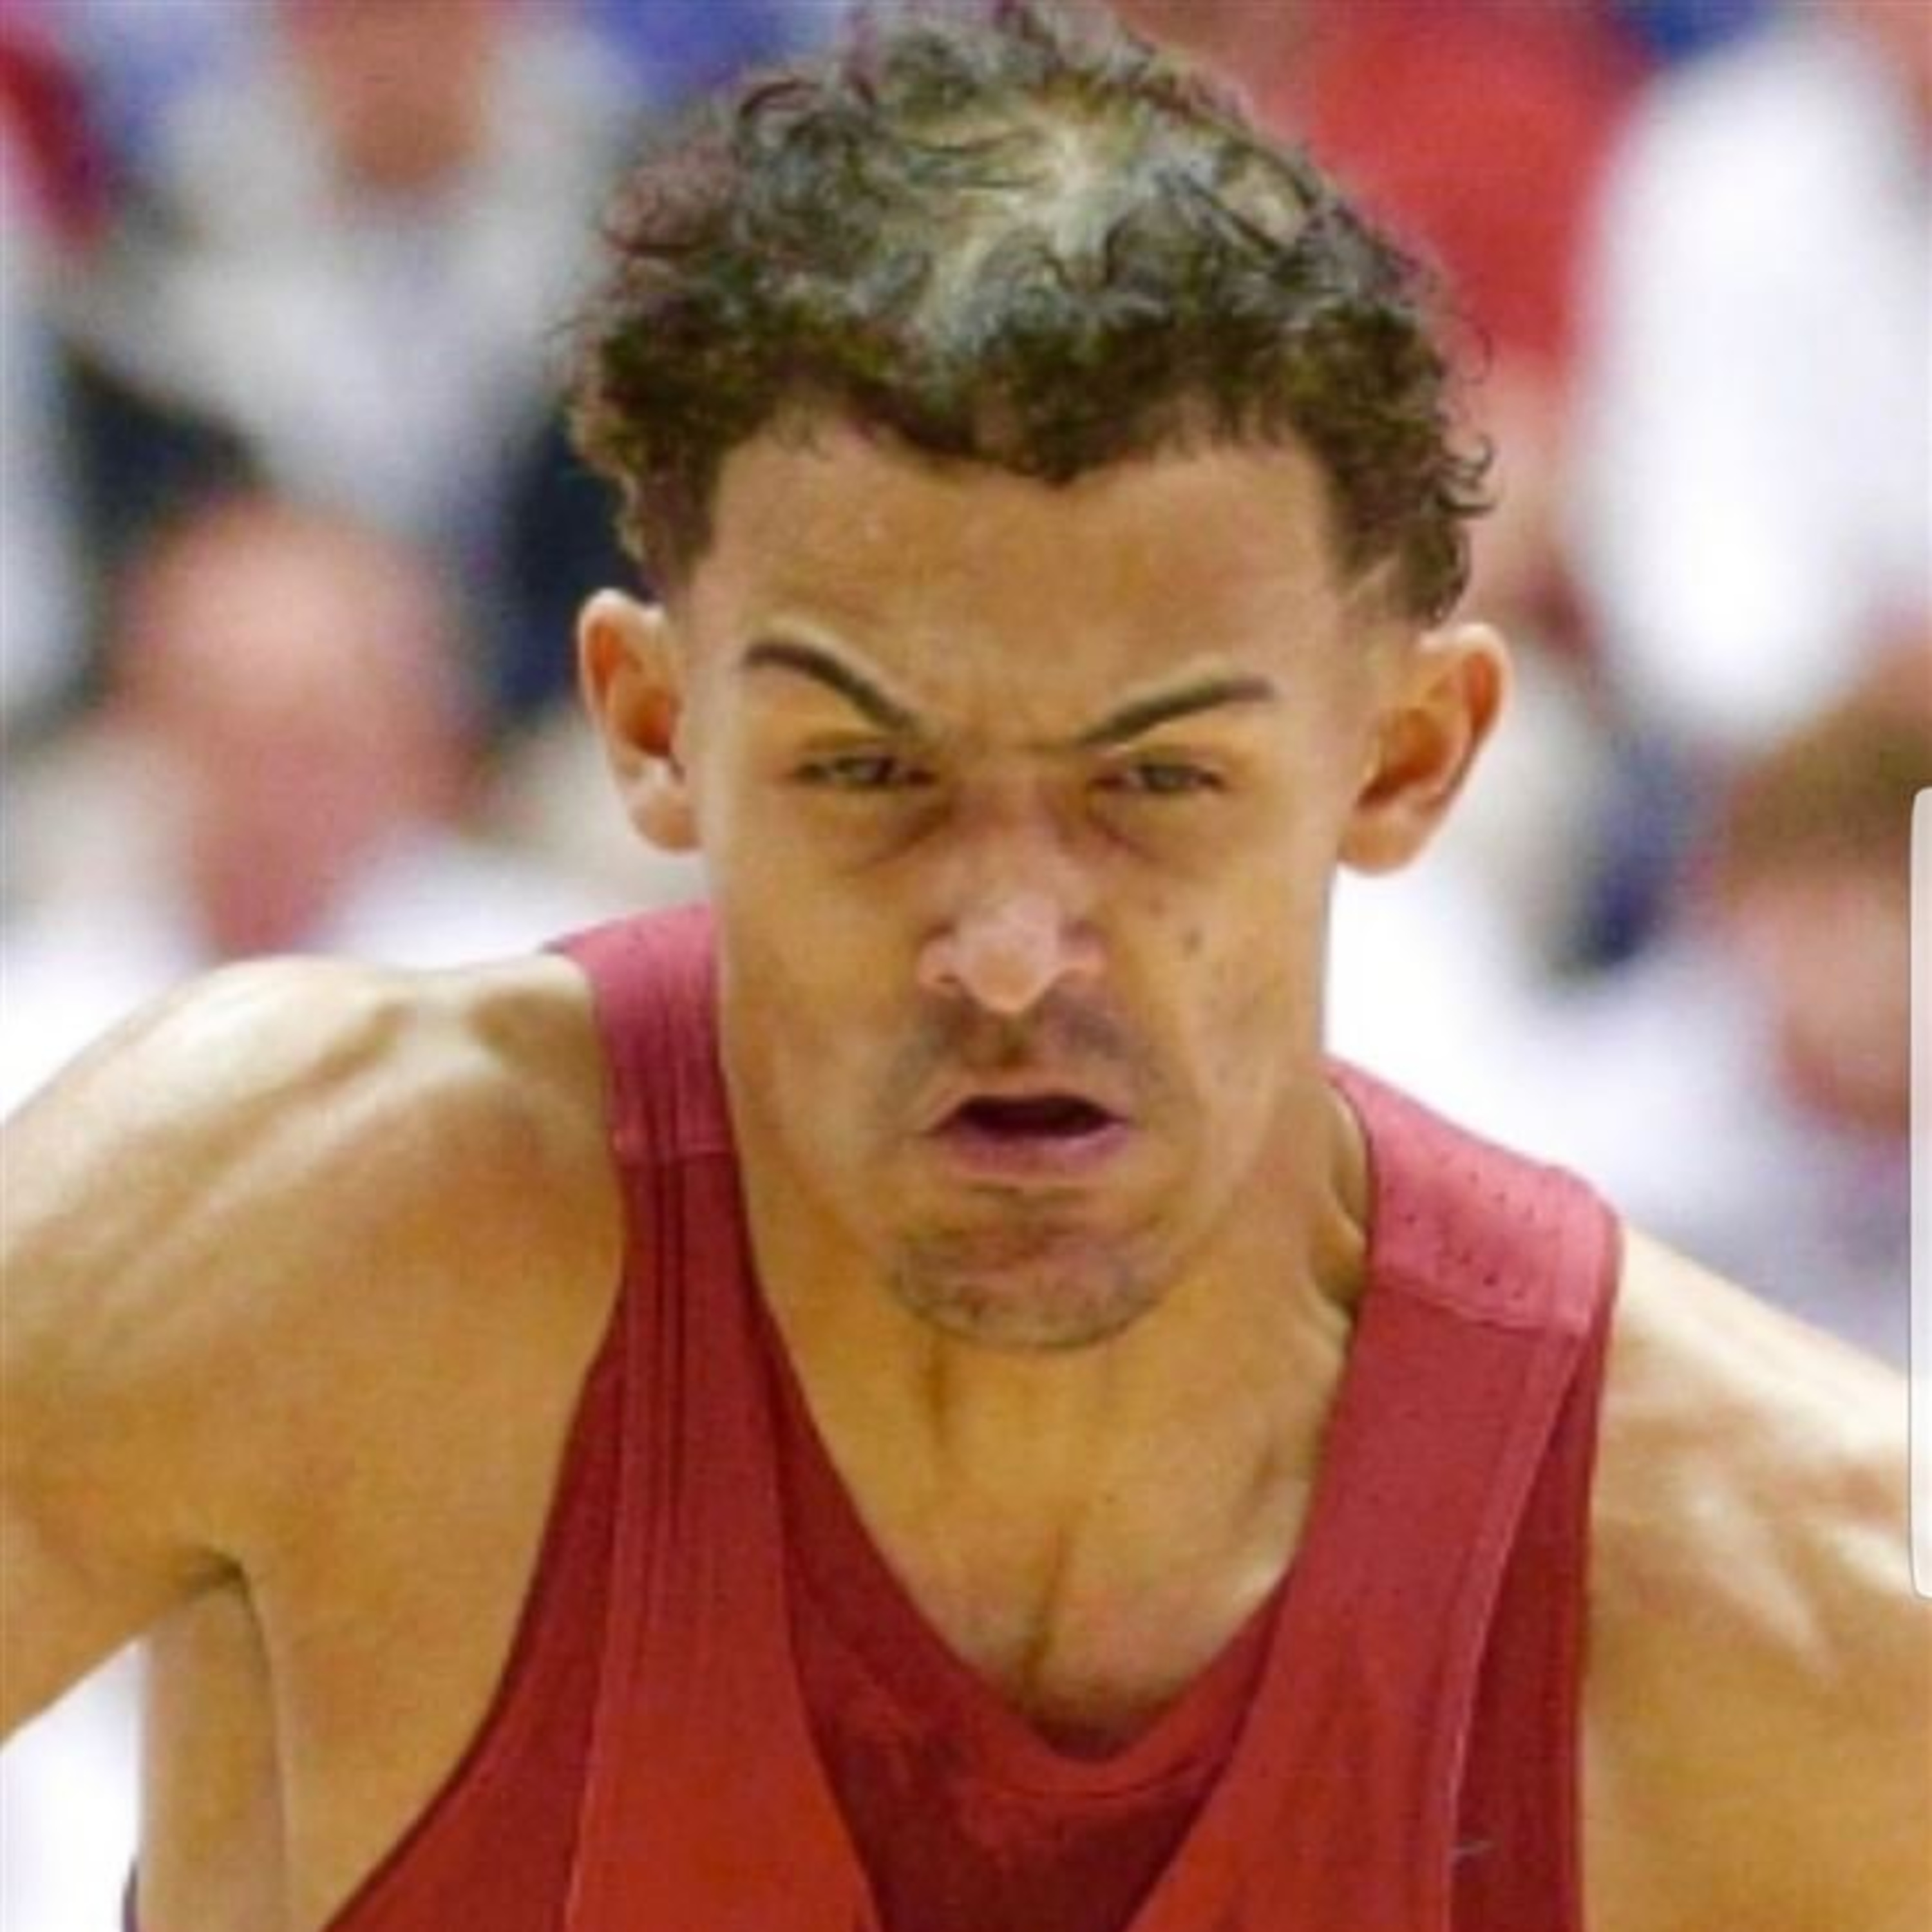 Trae Young HAIR Lands HIM $300M Hair Modeling Deal!